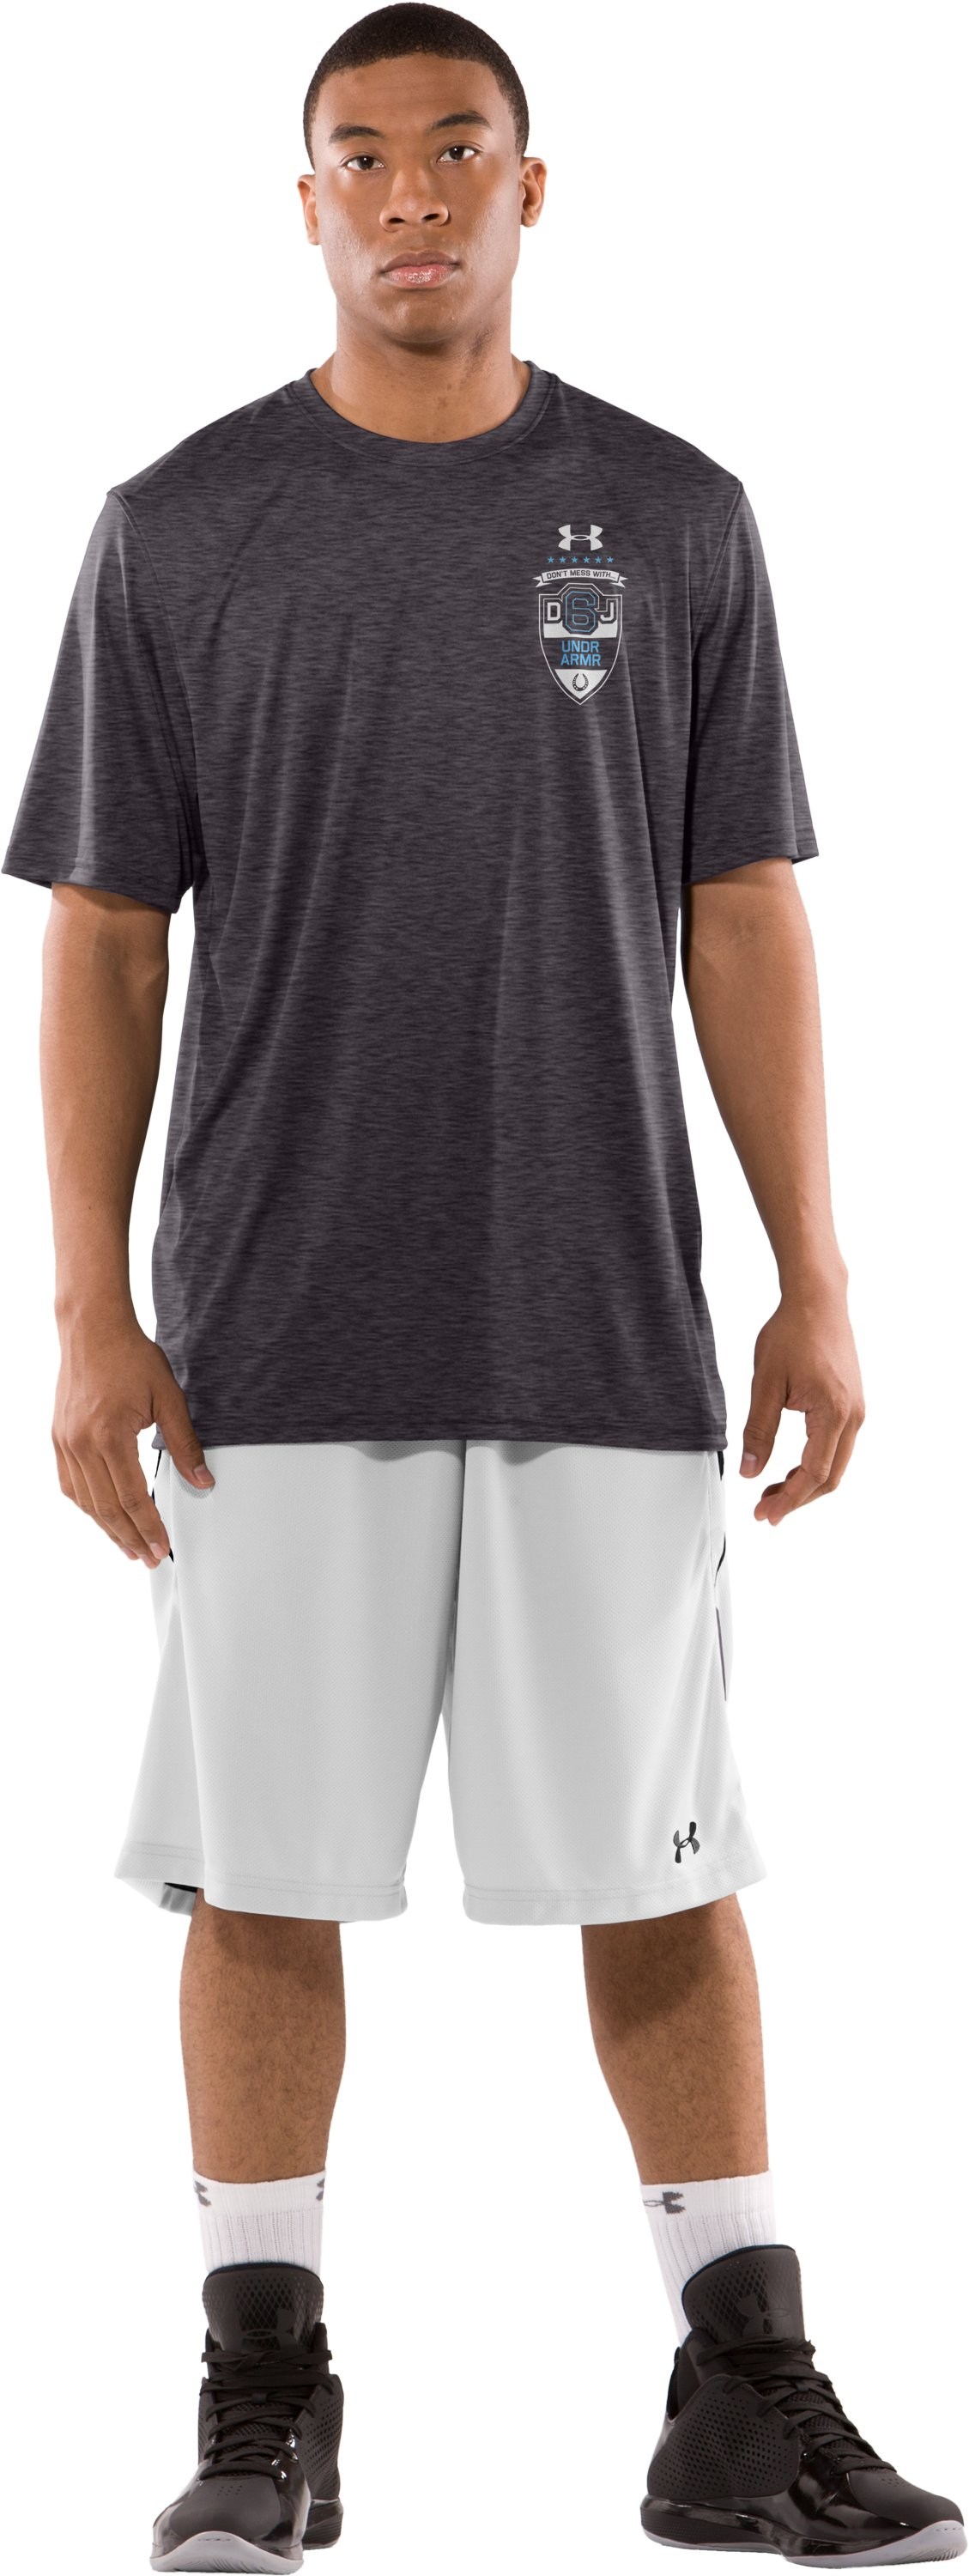 Men's DeAndre Jordan Player Reppin' T-Shirt, Carbon Heather, Front